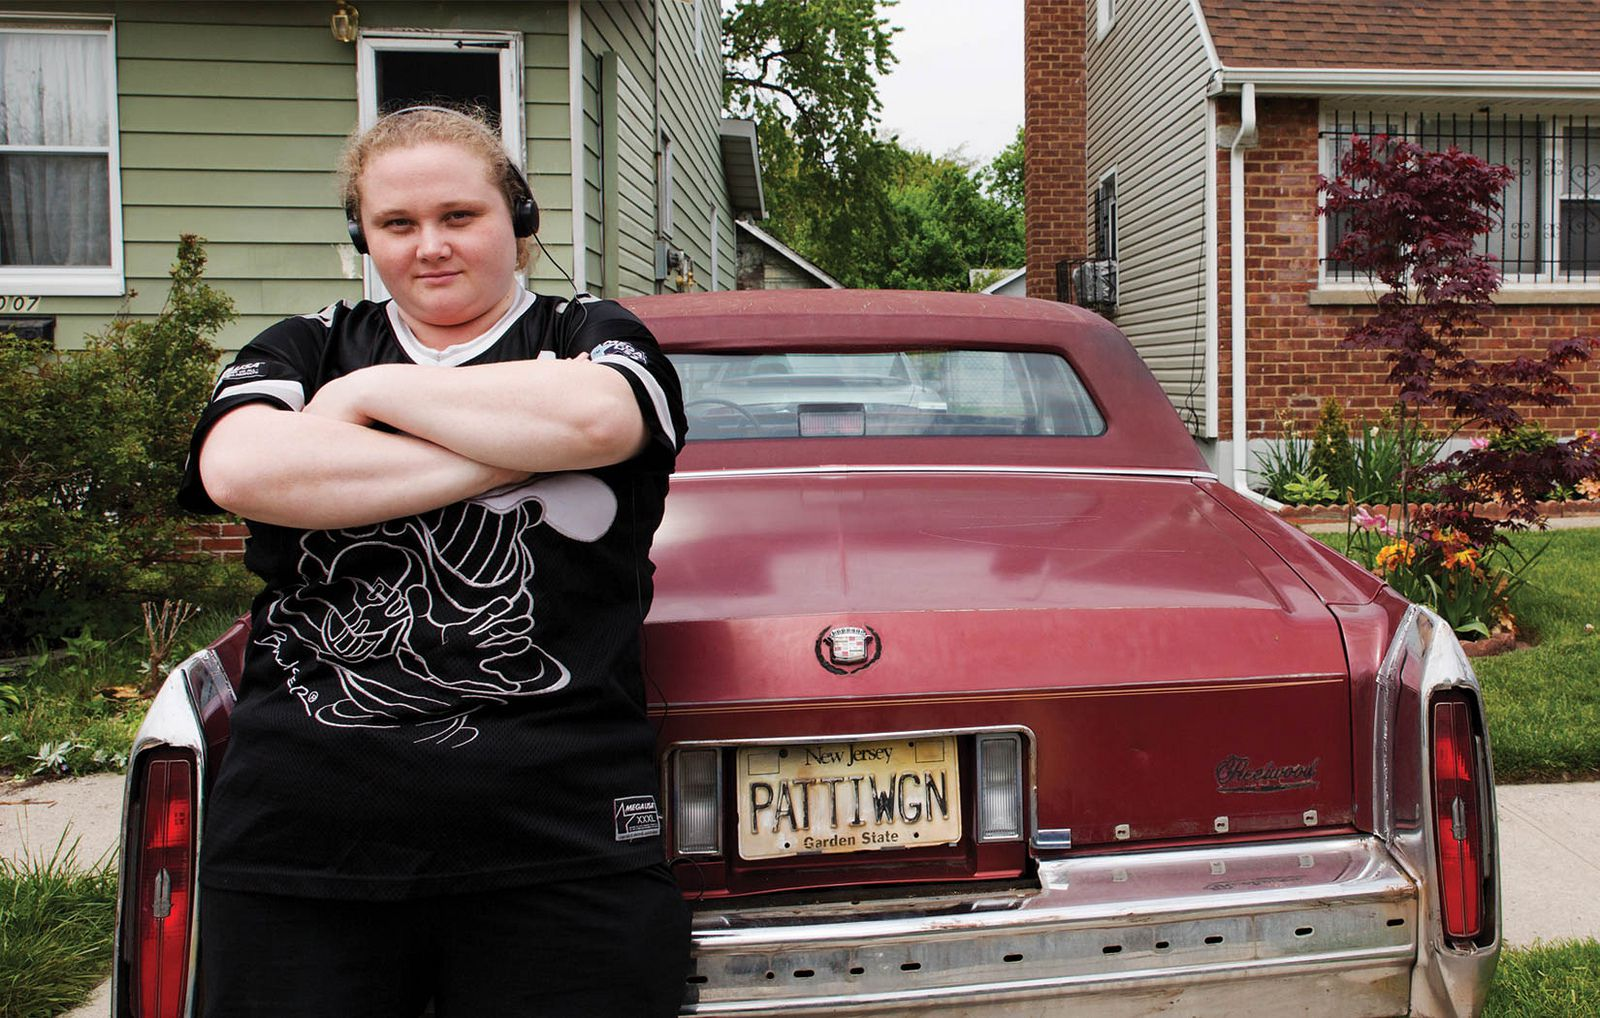 Australian actress Danielle Macdonald stars in  Patti Cake$  as a New Jersey teen who finds her voice as a rapper.